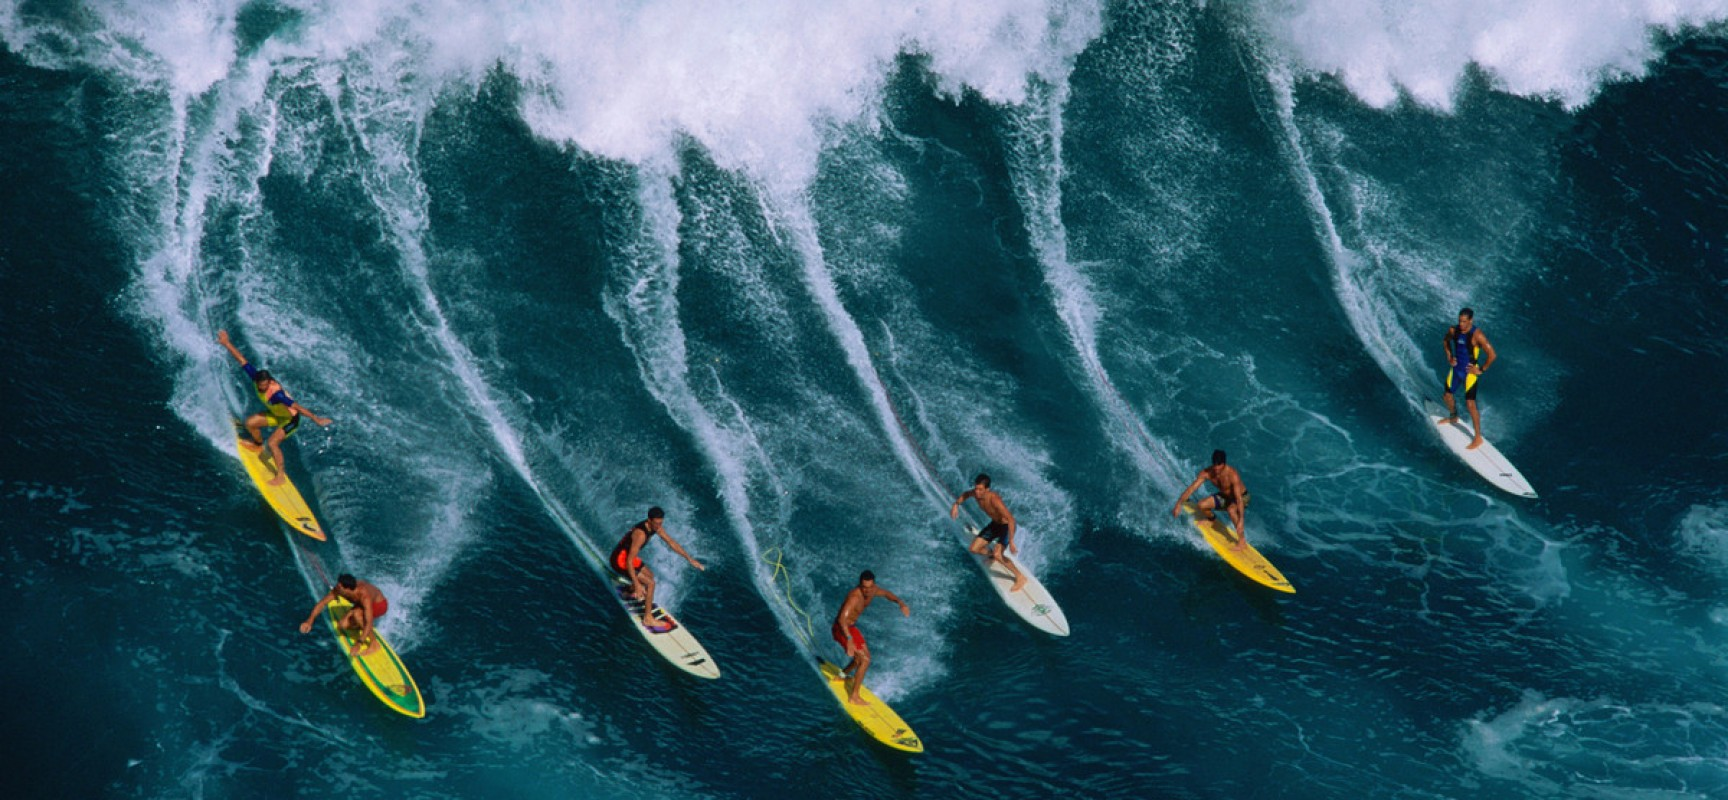 Scott Tominaga: A Few Things Investors Can Learn From Surfers